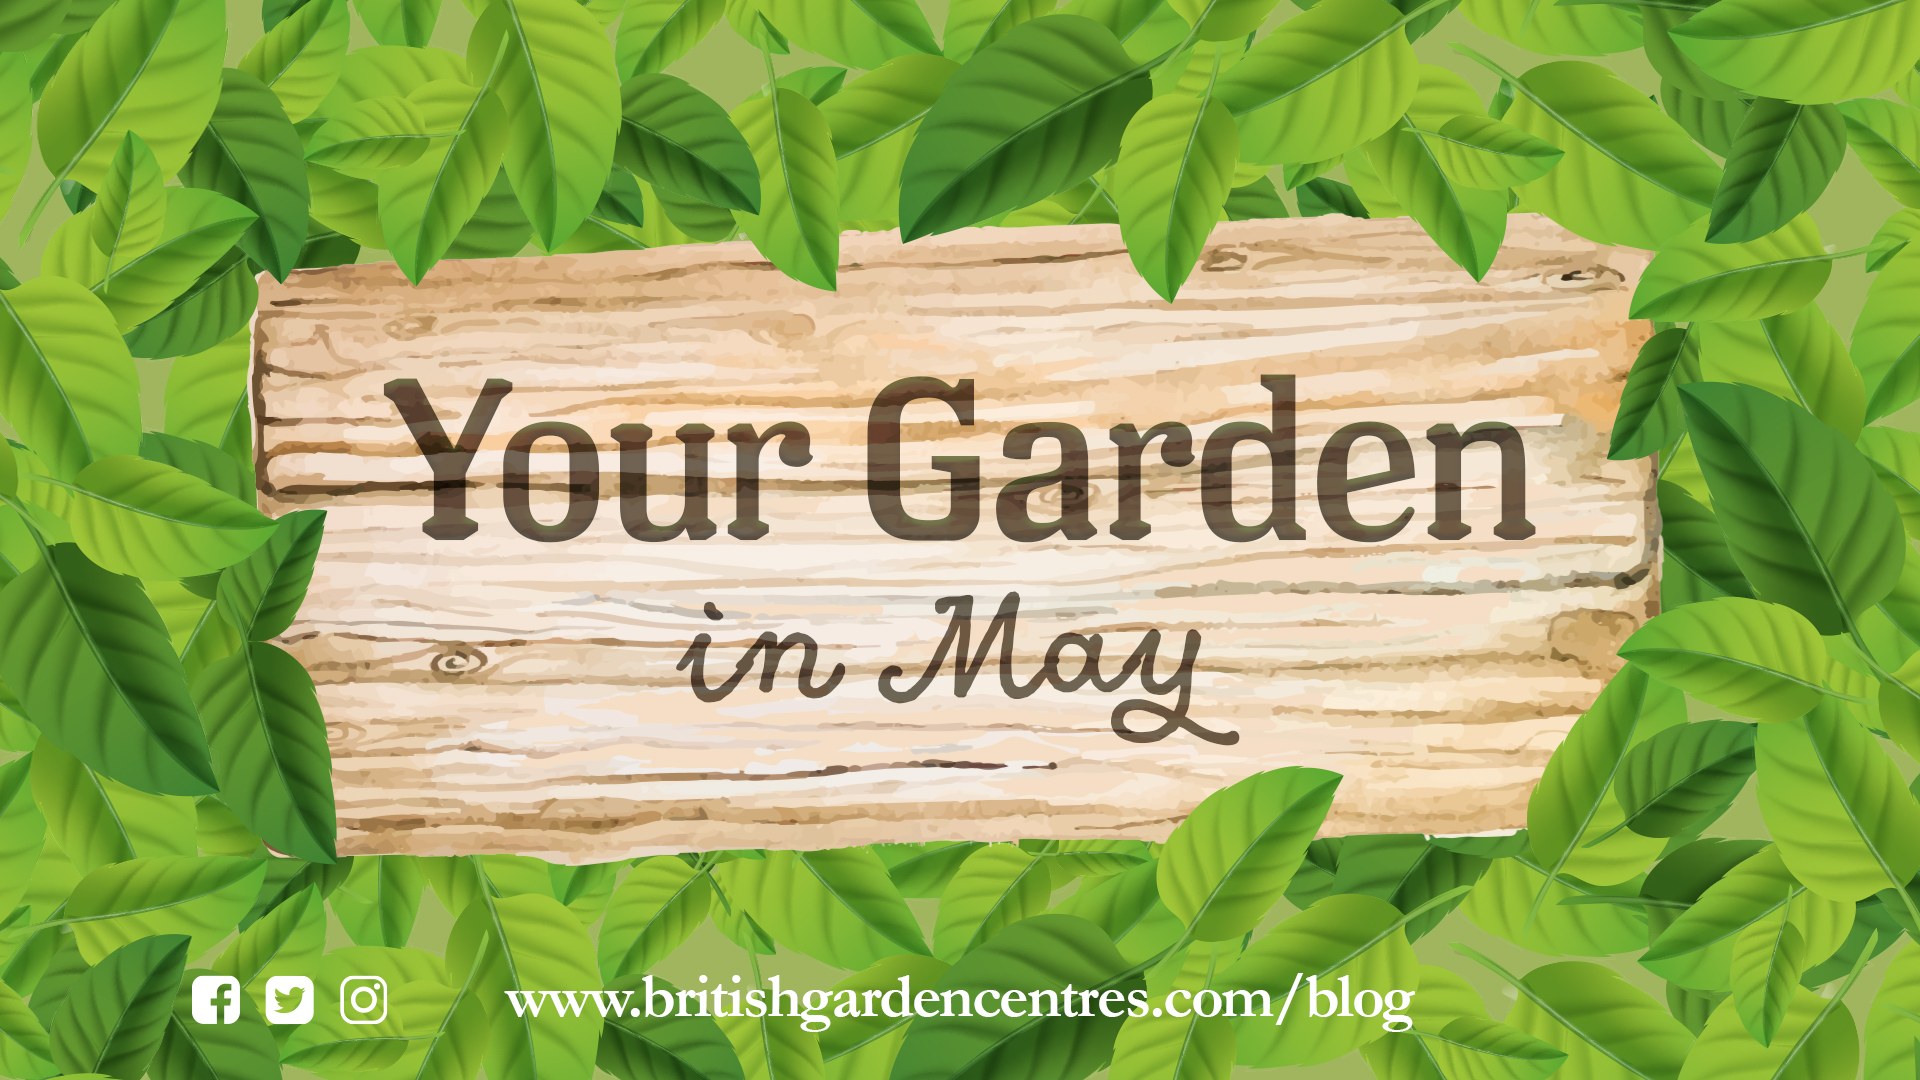 Your garden - May